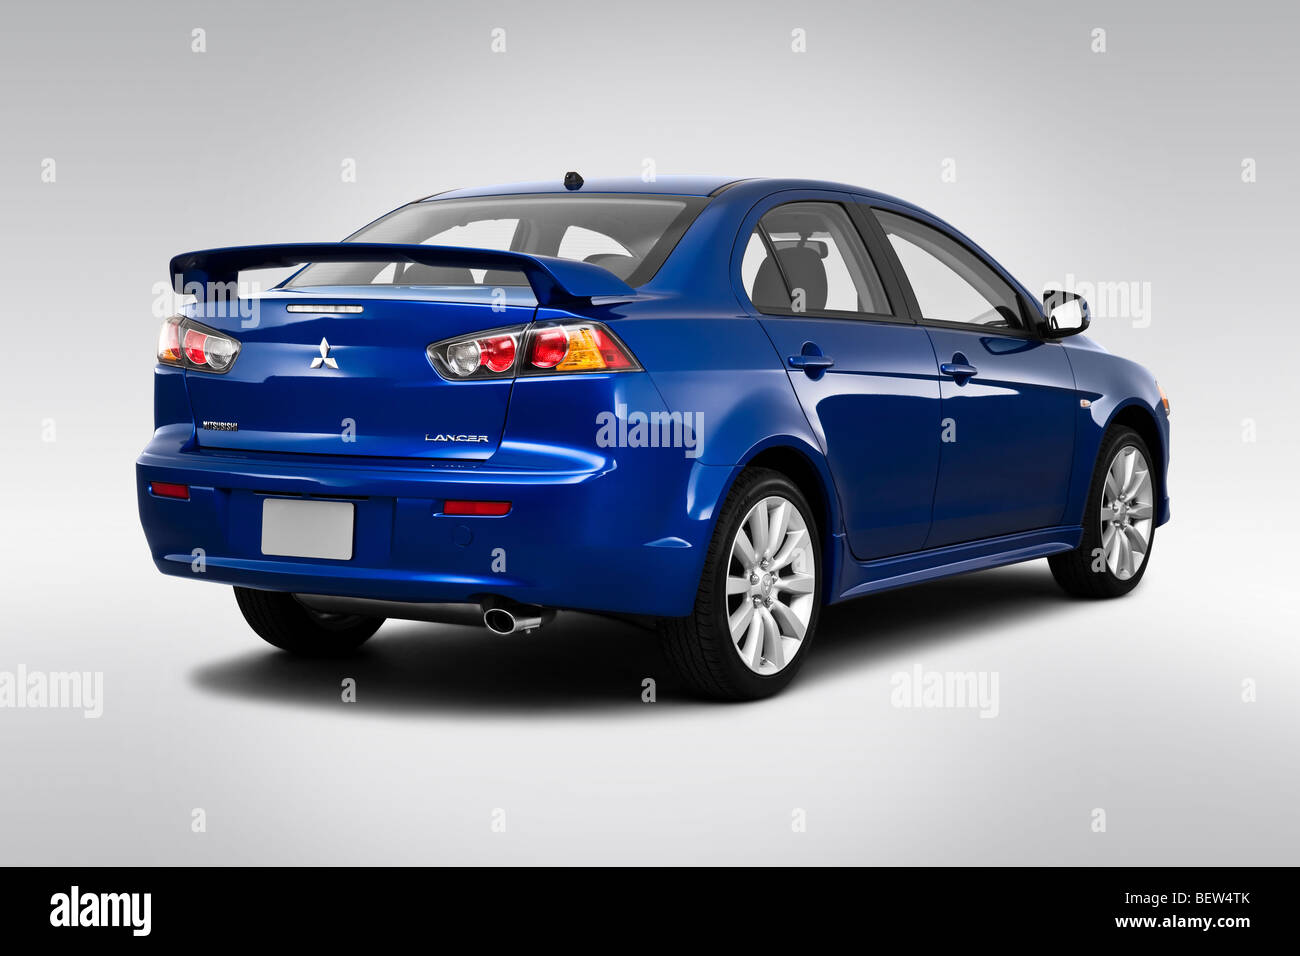 2010 mitsubishi lancer gts in blue rear angle view stock photo 26368179 alamy. Black Bedroom Furniture Sets. Home Design Ideas